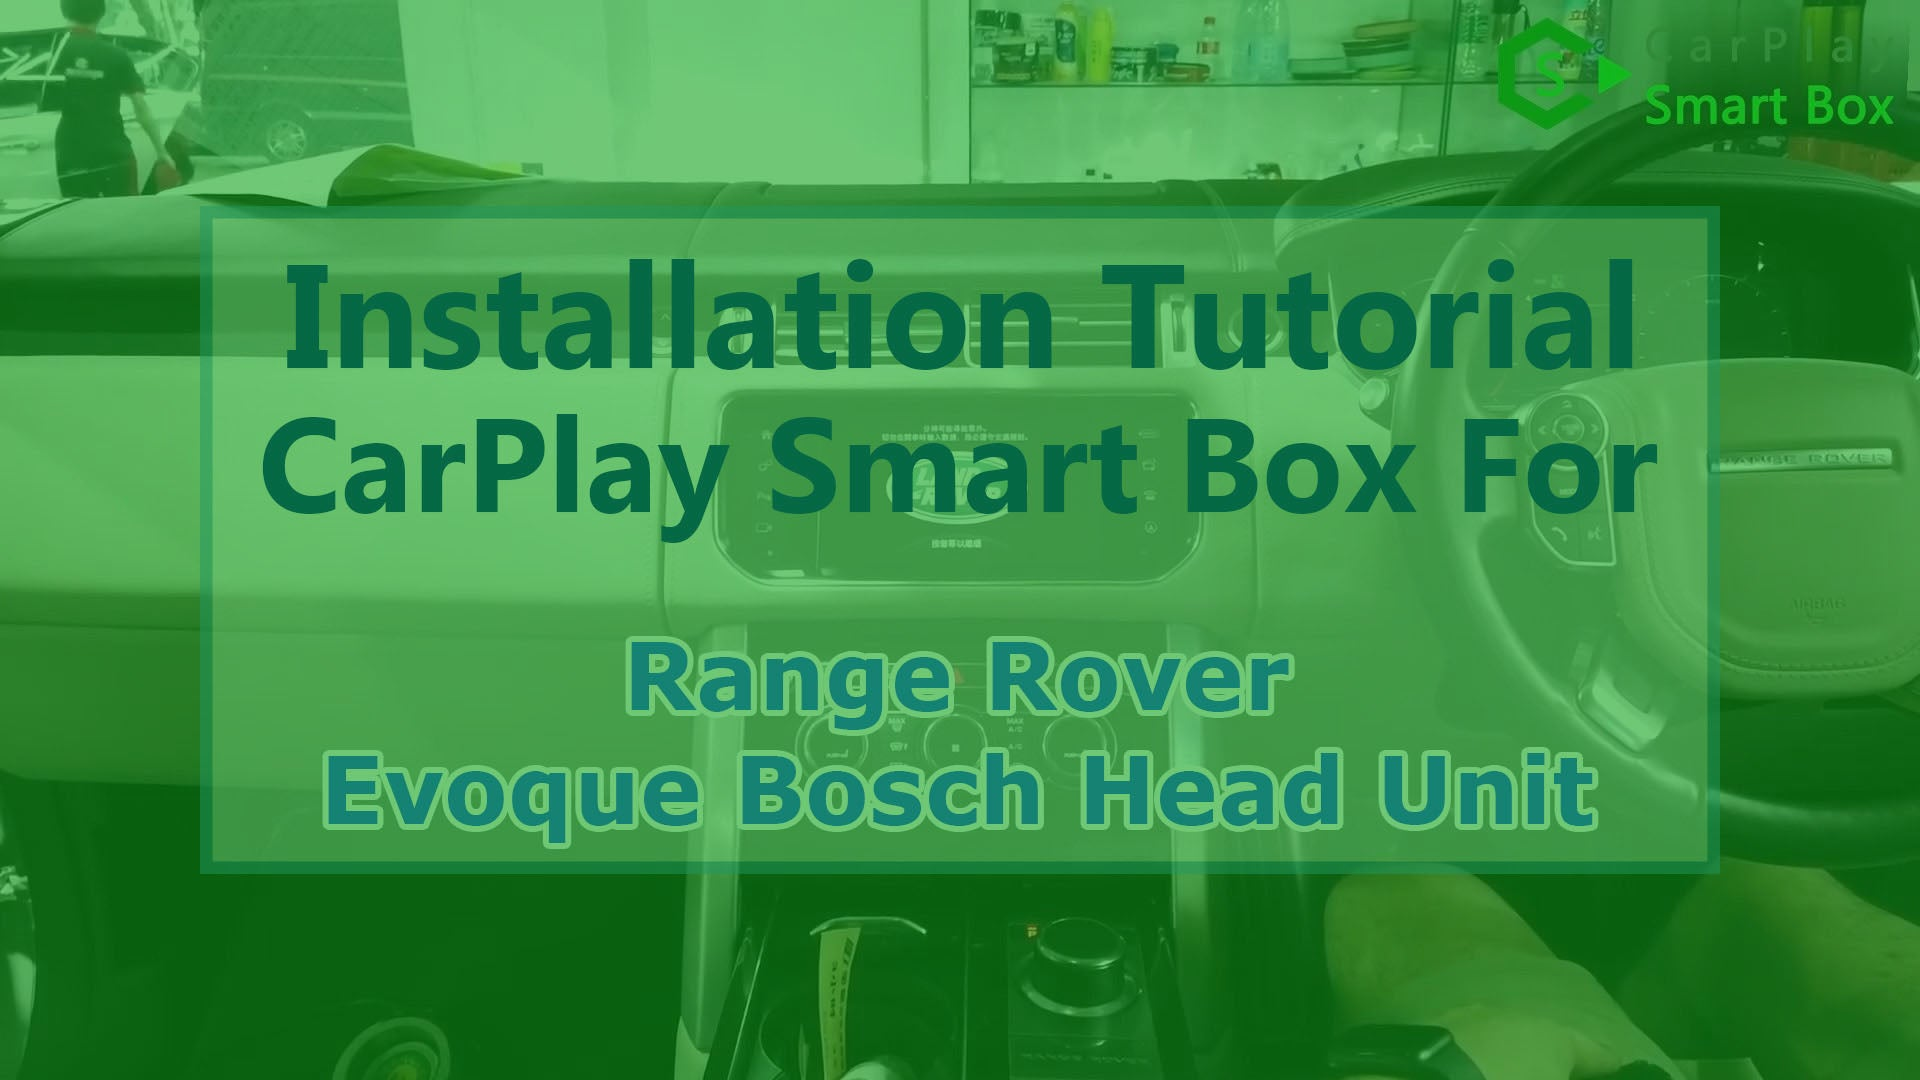 (Range Rover Bosch Head Unit) Wireless Apple CarPlay Smart Box Installation for Range Rover Evoque